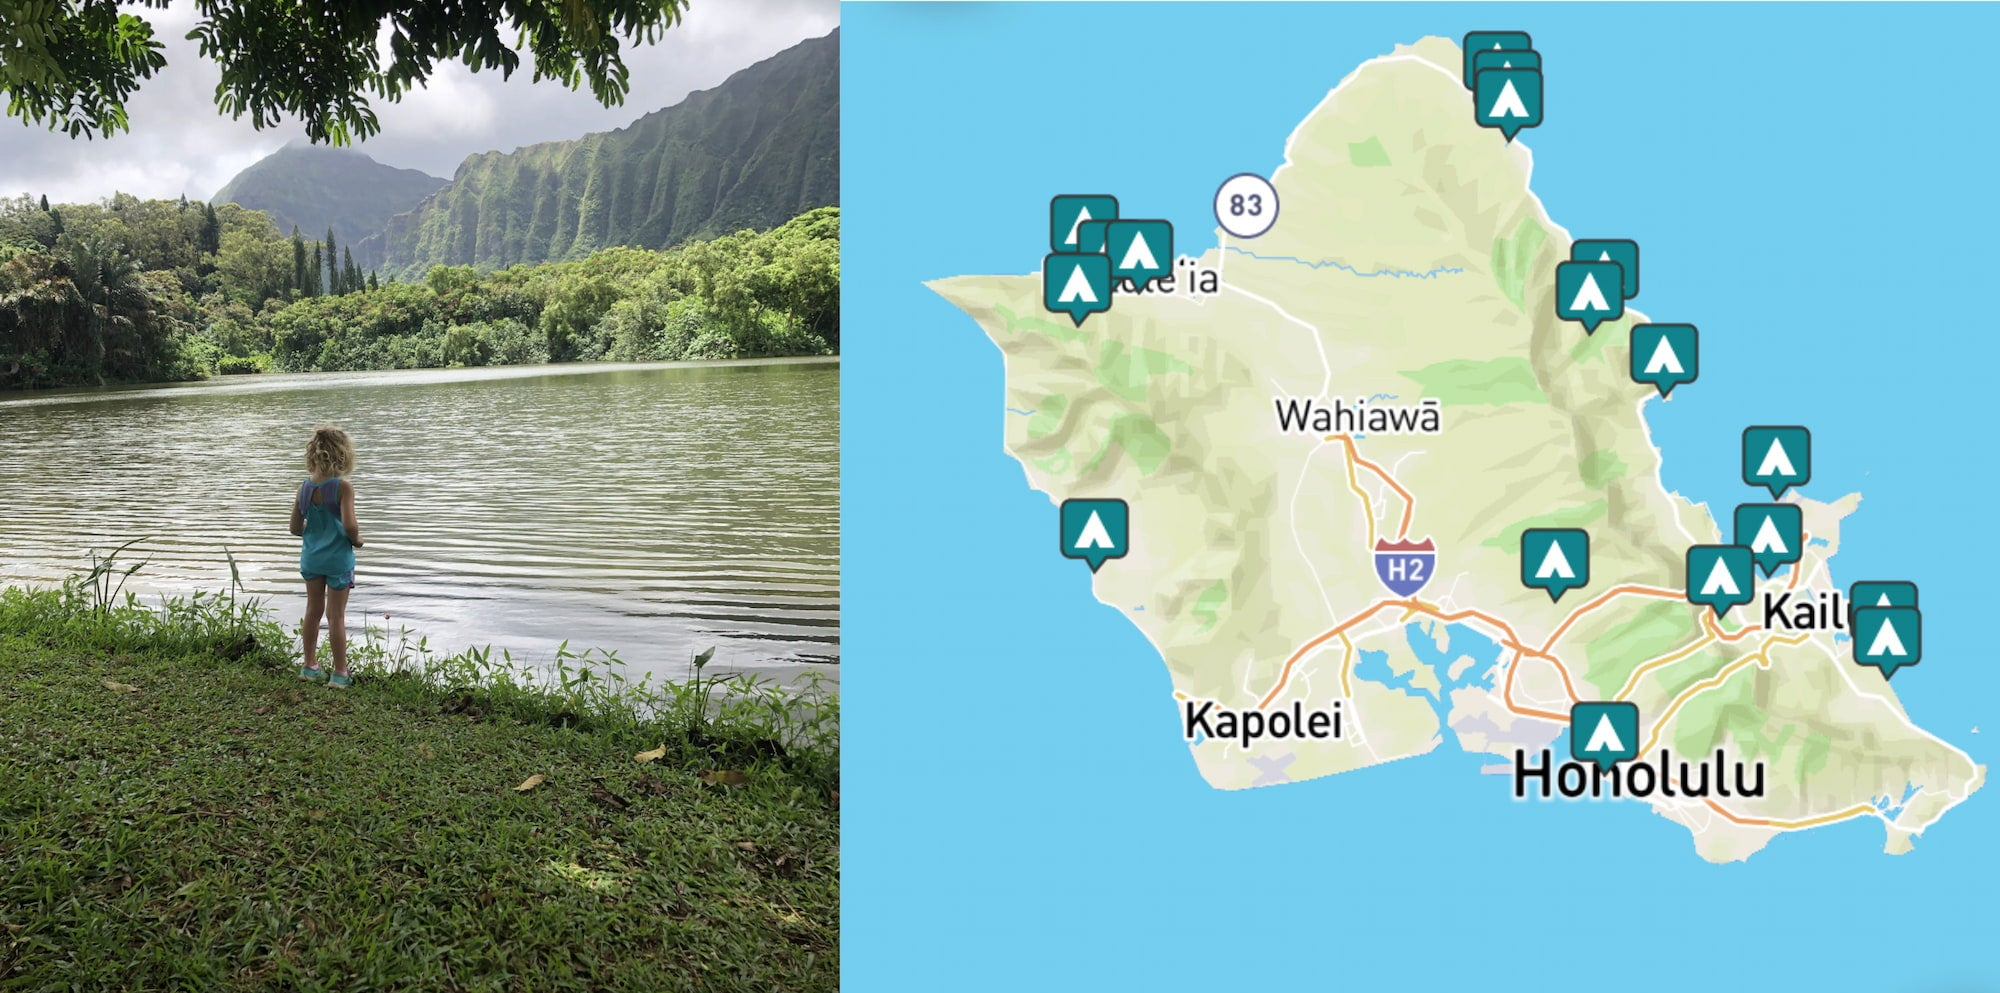 side-by-side images of camper near water and a map of campgrounds near Honolulu